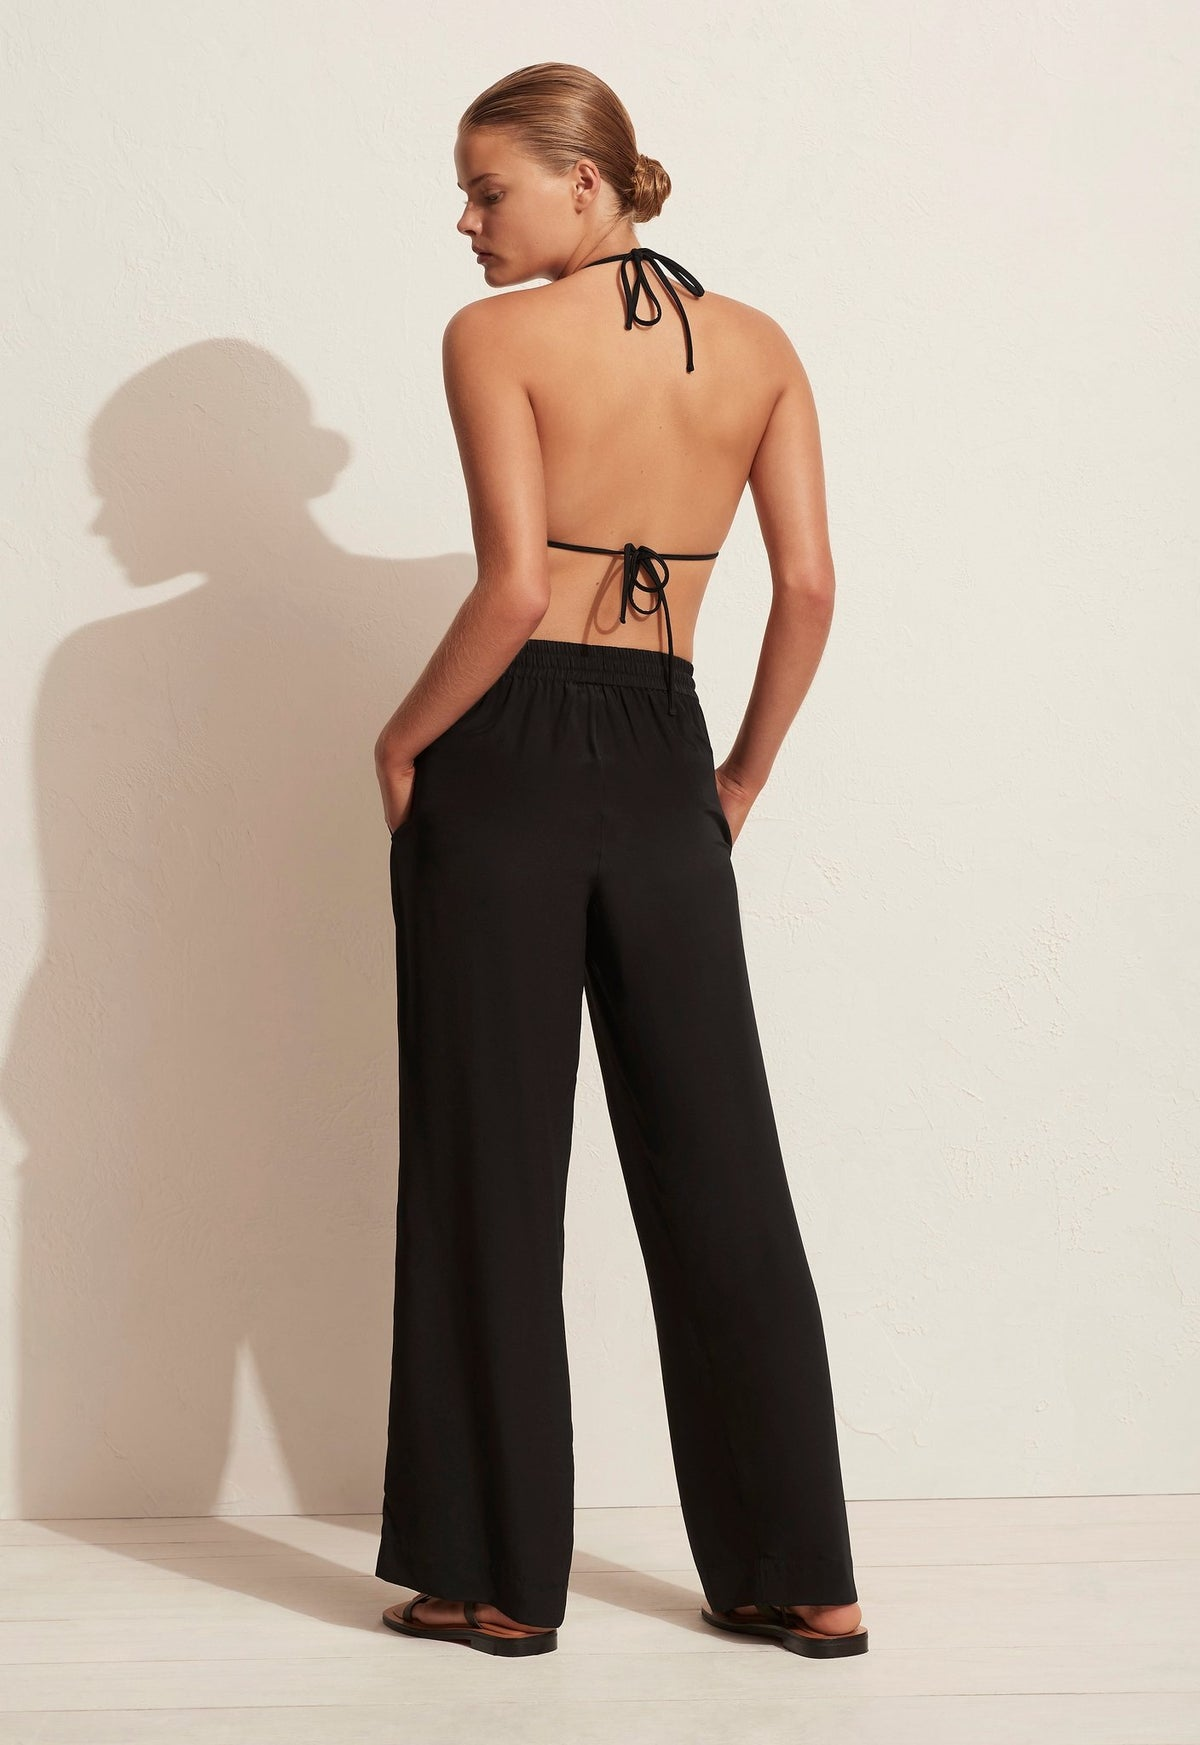 The Drawstring Trouser